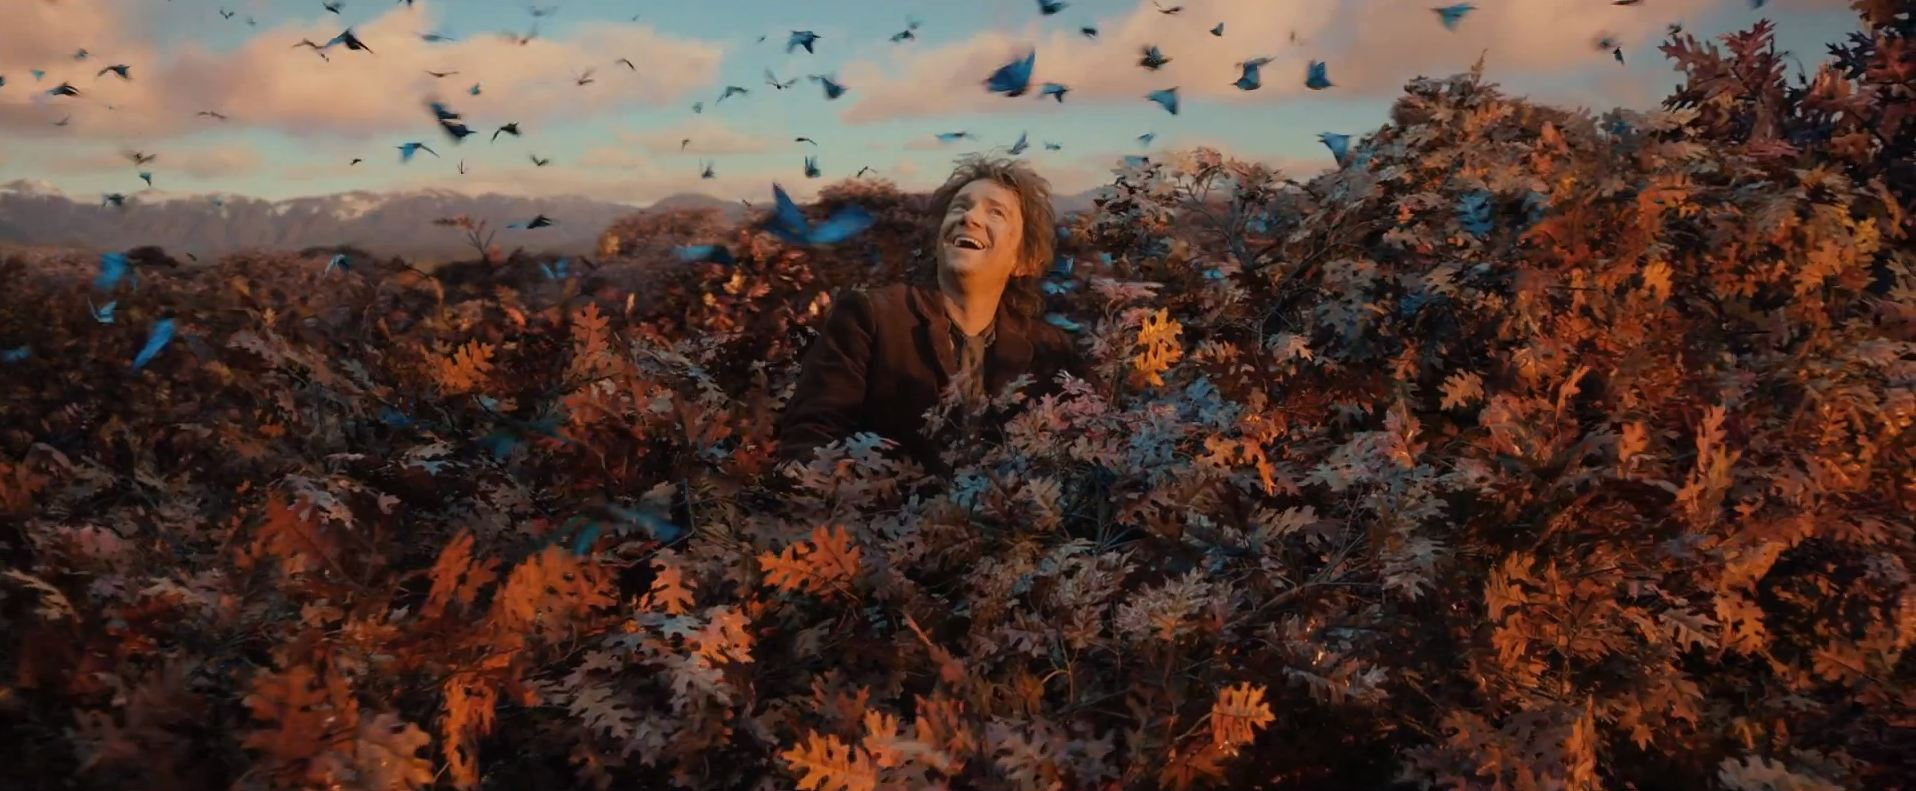 The Hobbit: The Desolation of Smaug will be infinitely better than An Unexpected Journey